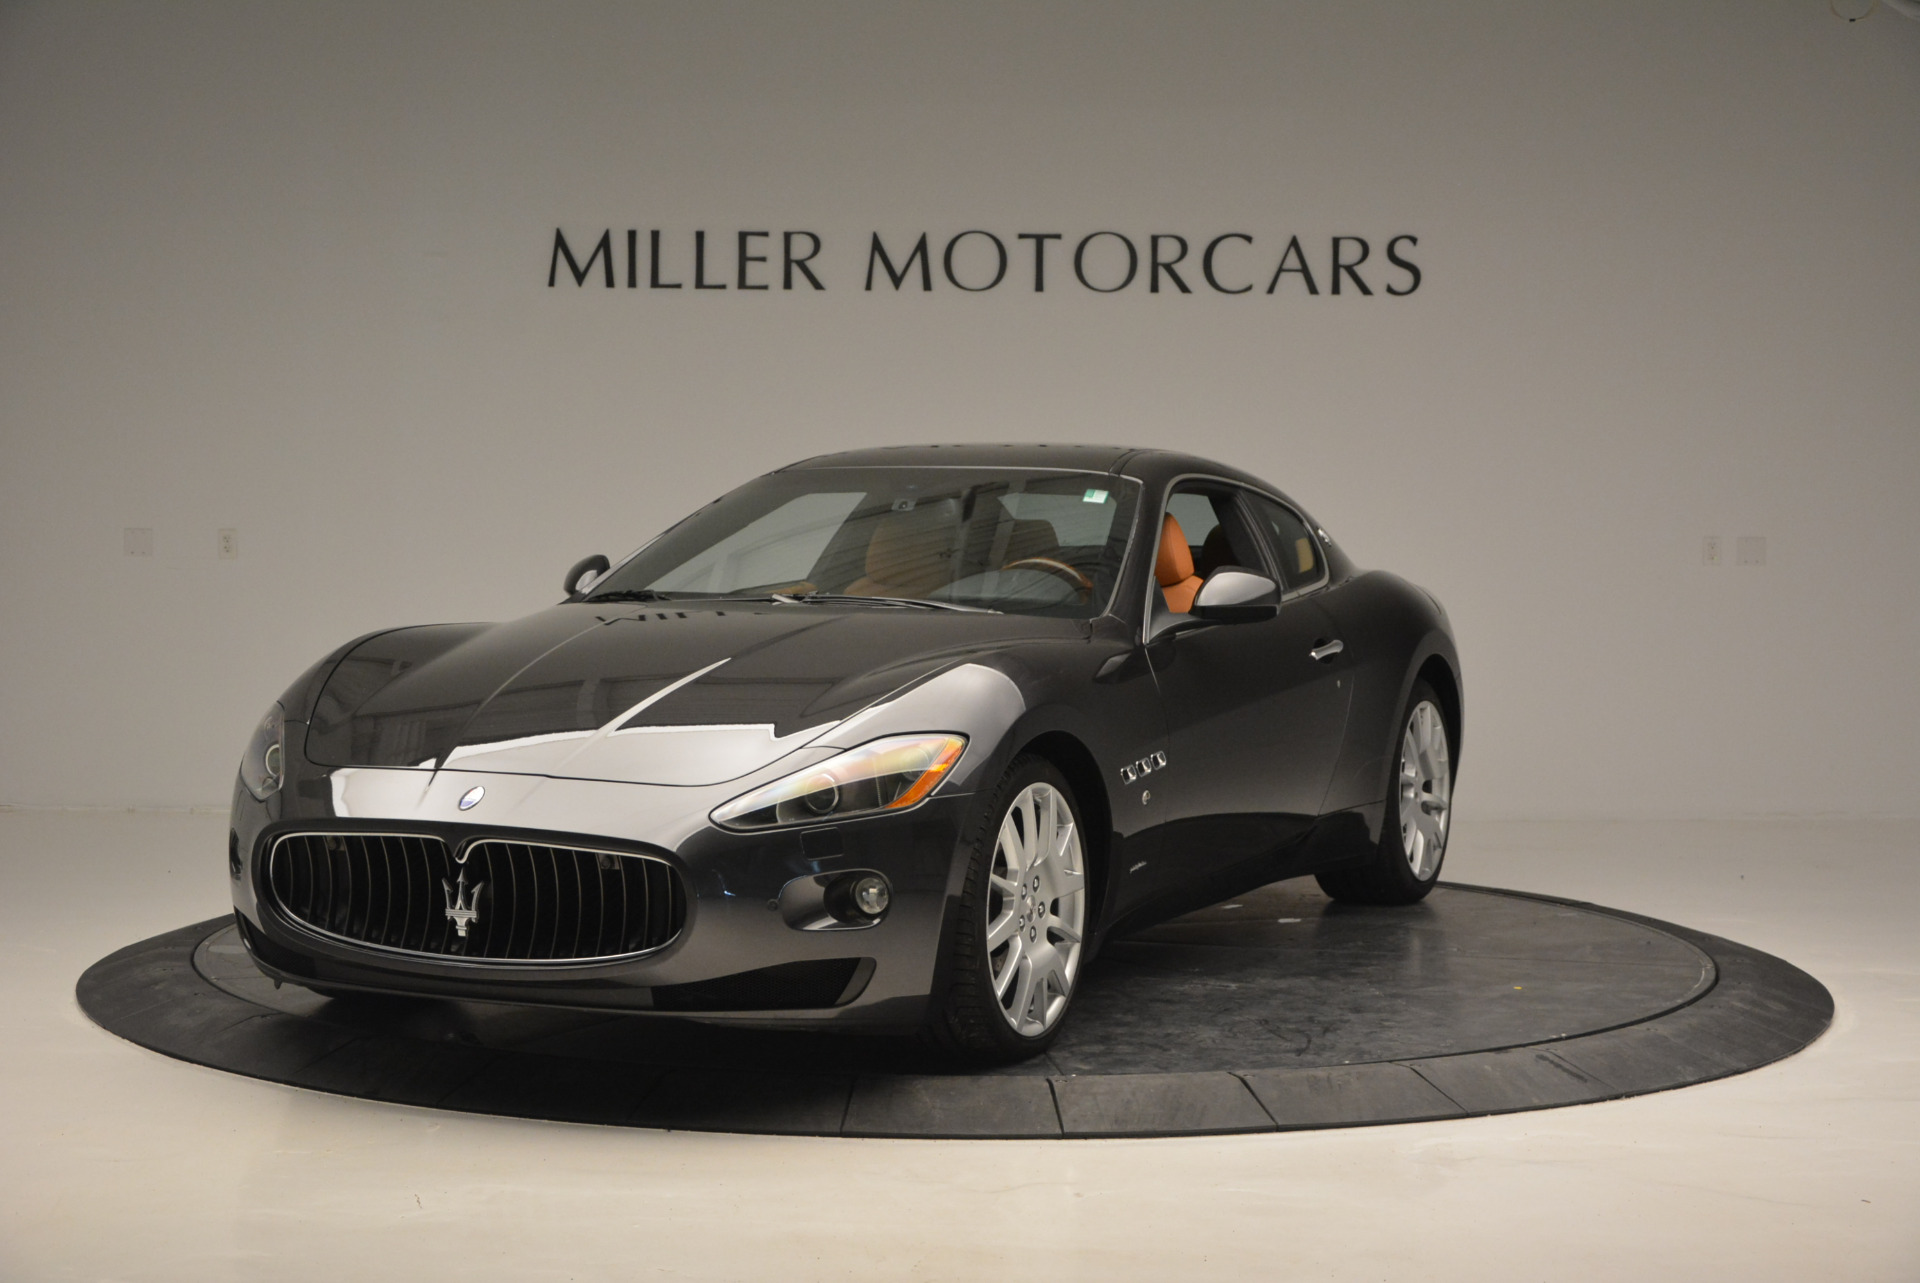 Used 2011 Maserati GranTurismo for sale Sold at Maserati of Westport in Westport CT 06880 1